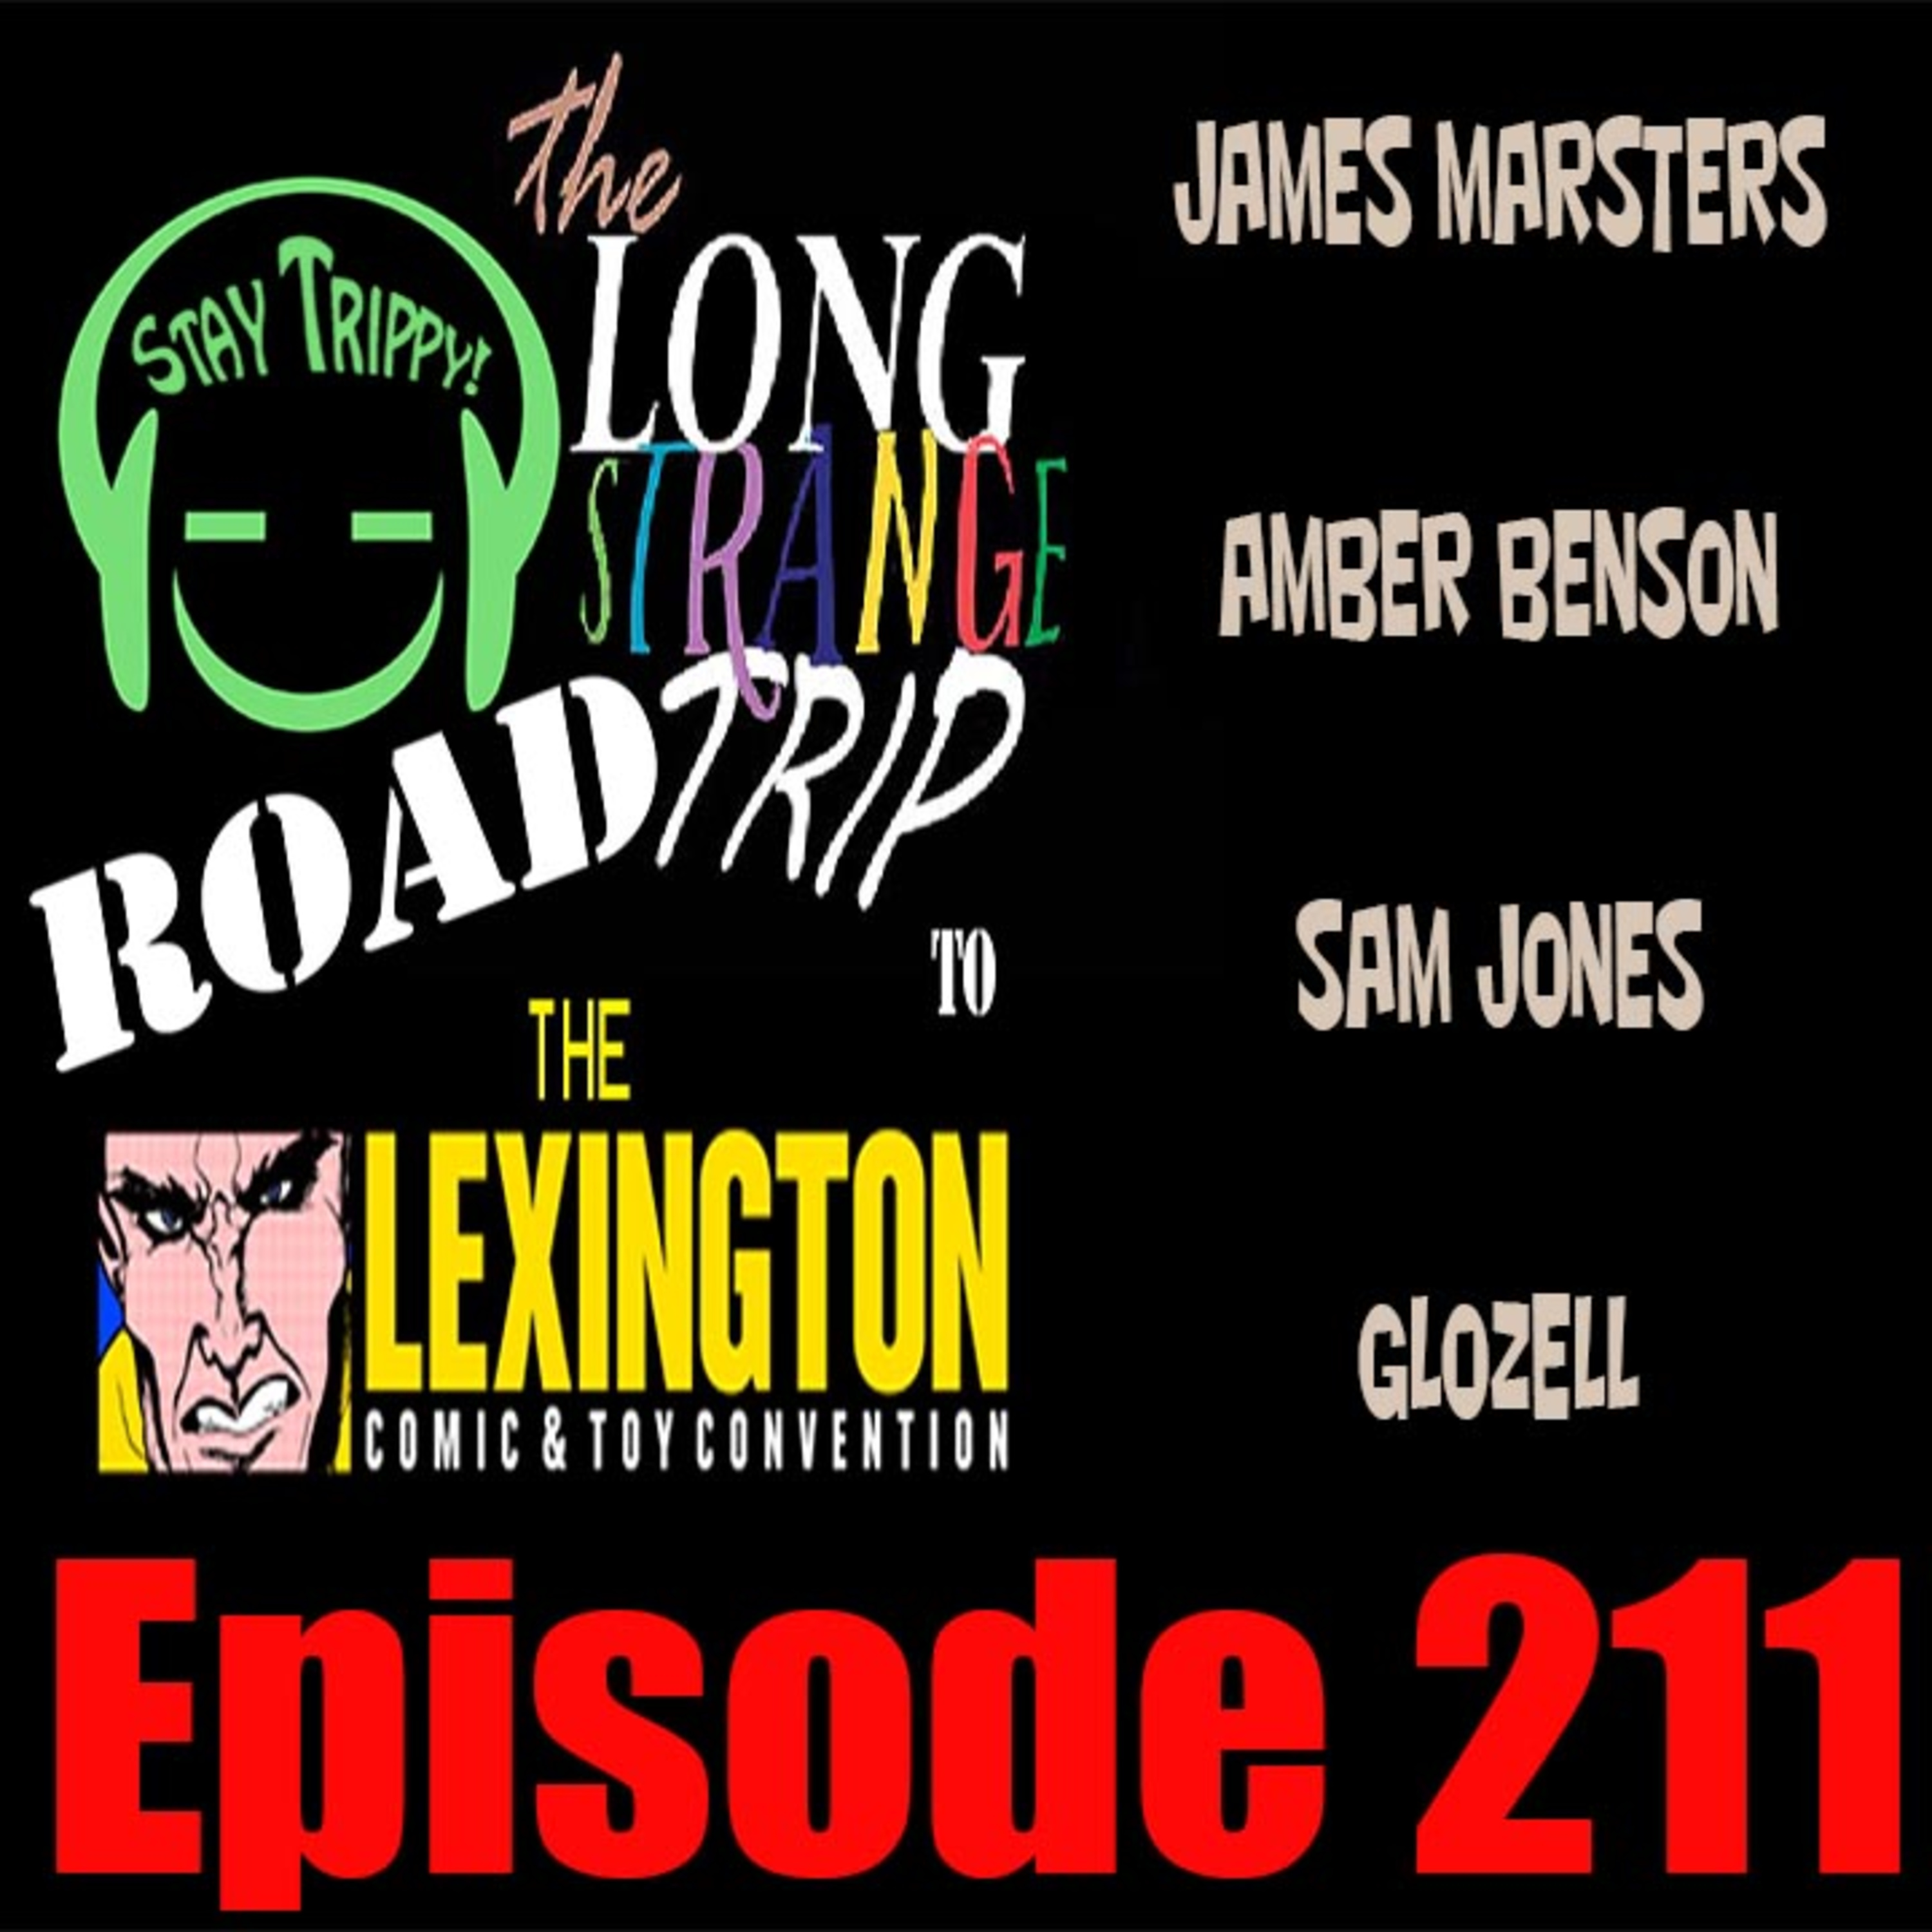 LST 211: James Marsters, Sam Jones, GloZell, Jim Swearingen, and more from the Lexington Comic And Toy Con 2019